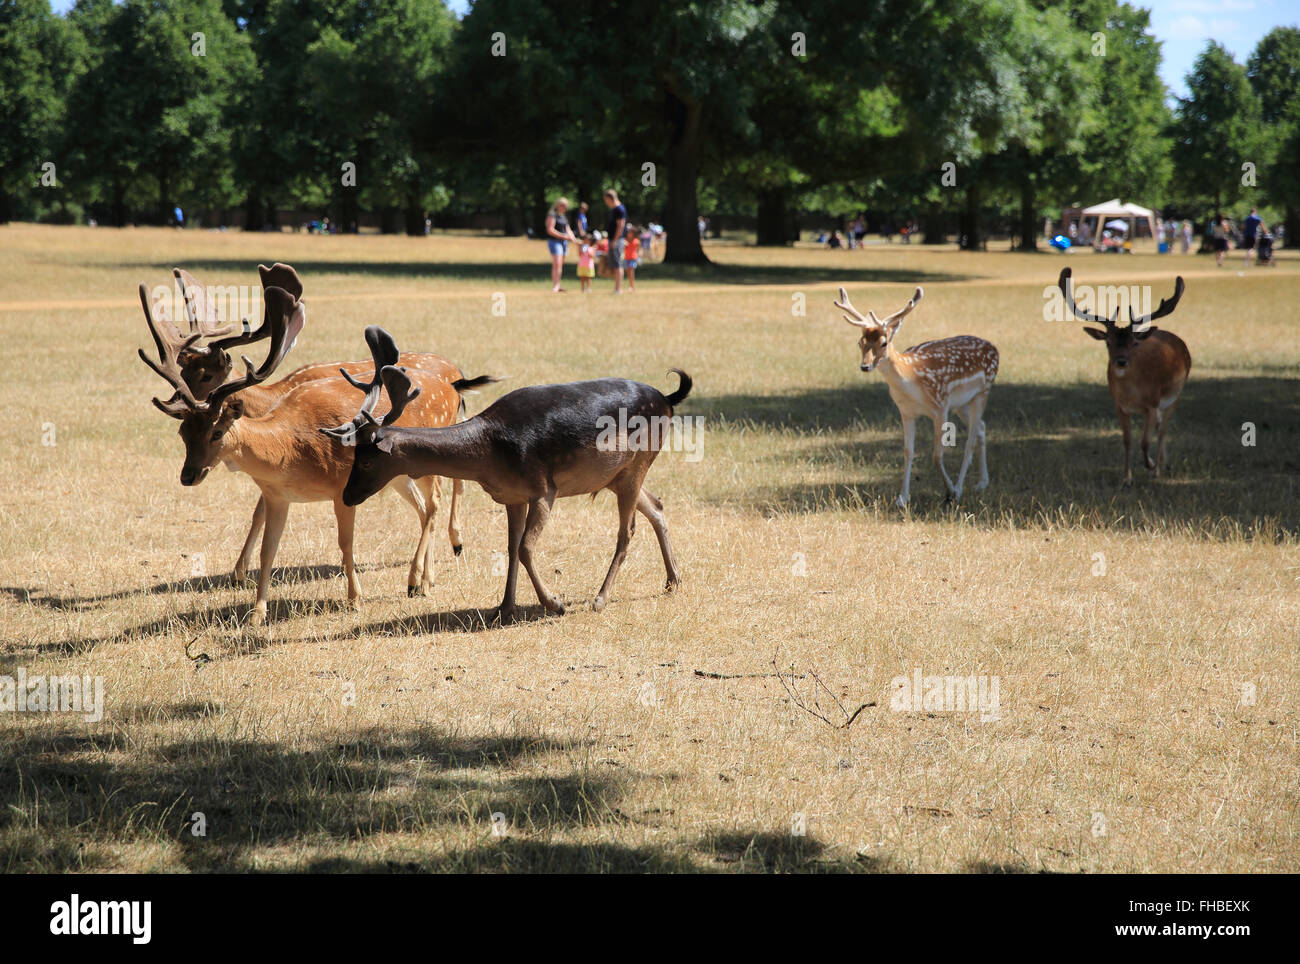 Pretty fallow deer in Royal Bushy Park, families picnicking behind, in Richmond, London, UK - Stock Image